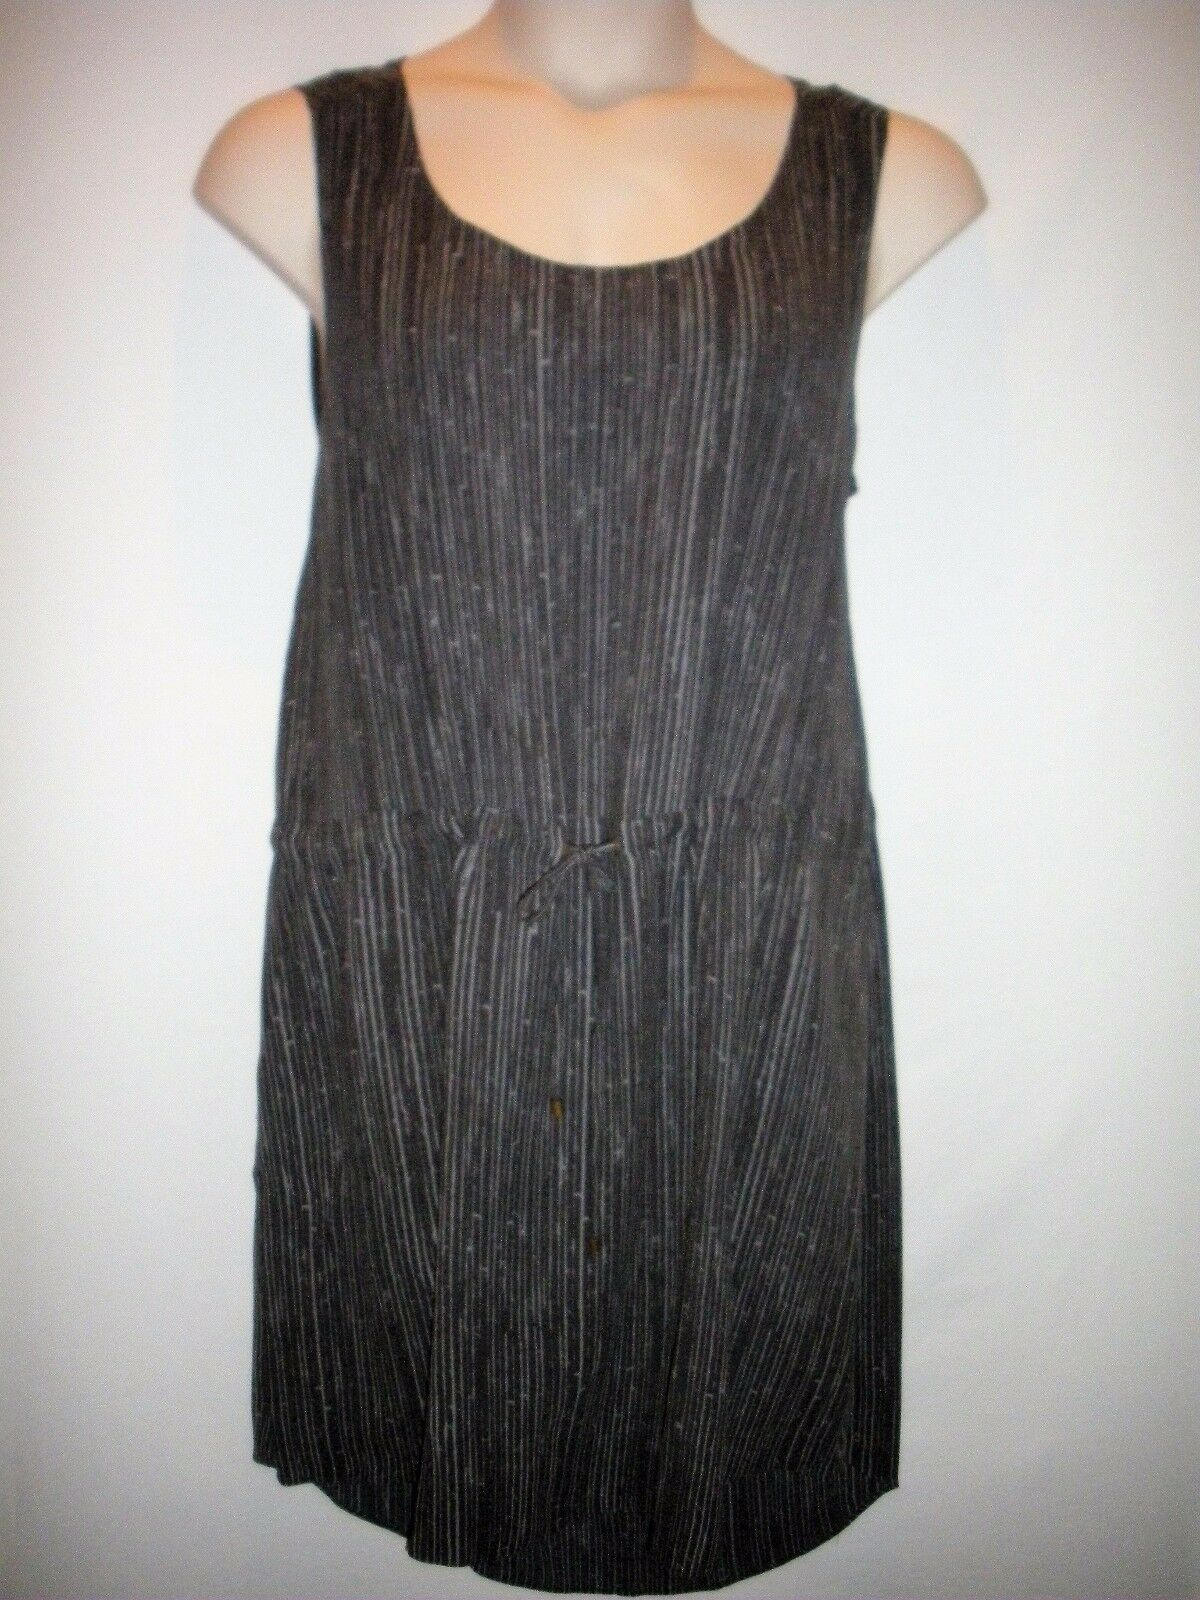 NEW with TAGS  EILEEN FISHER Sleeveless Drawstring Dress Größe Large - MSRP